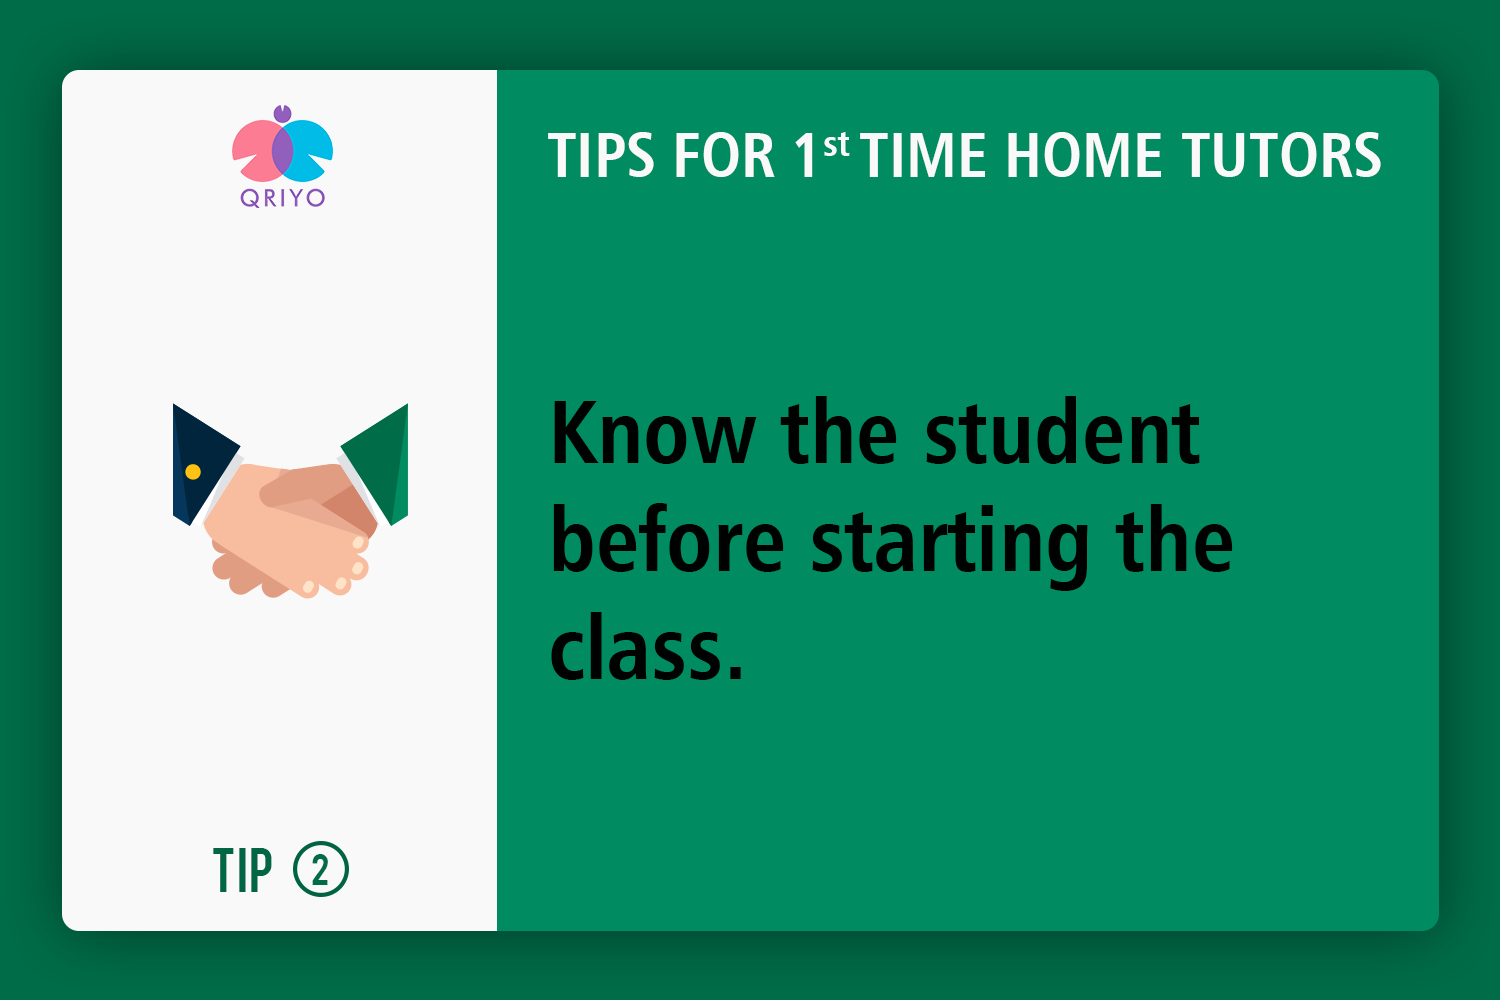 start with knowing the student first.